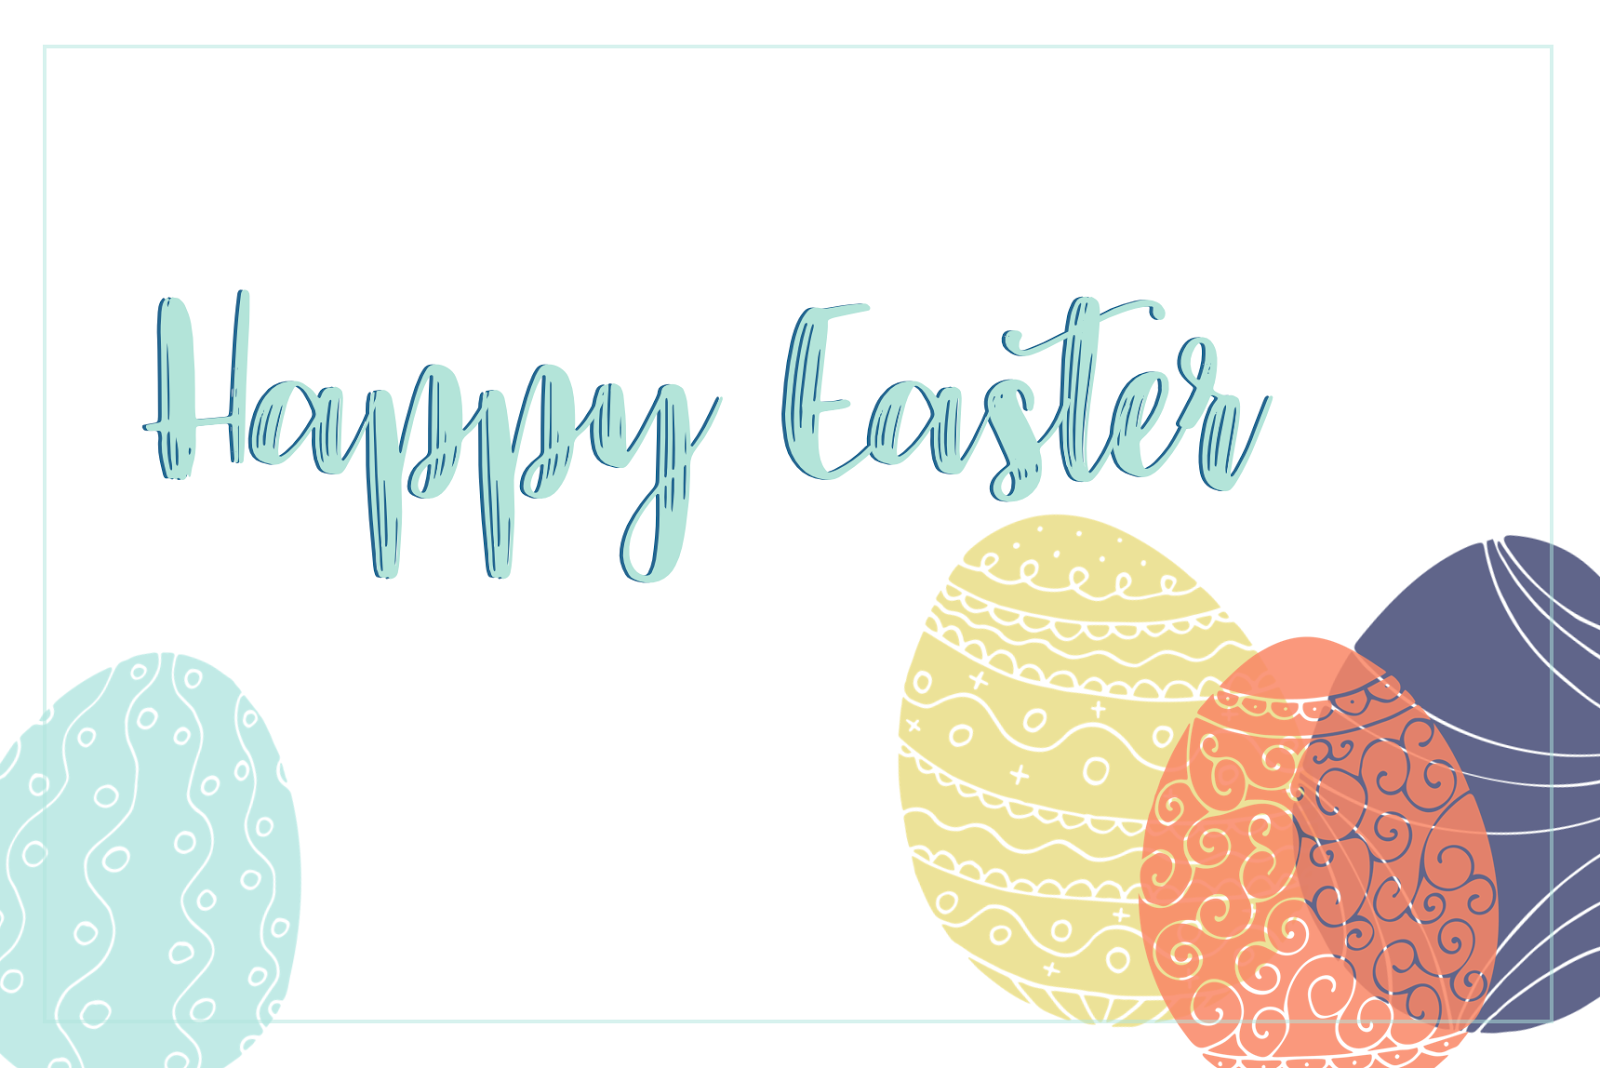 #easter #happy #free #download #journaling #card #happy easter #easter printable